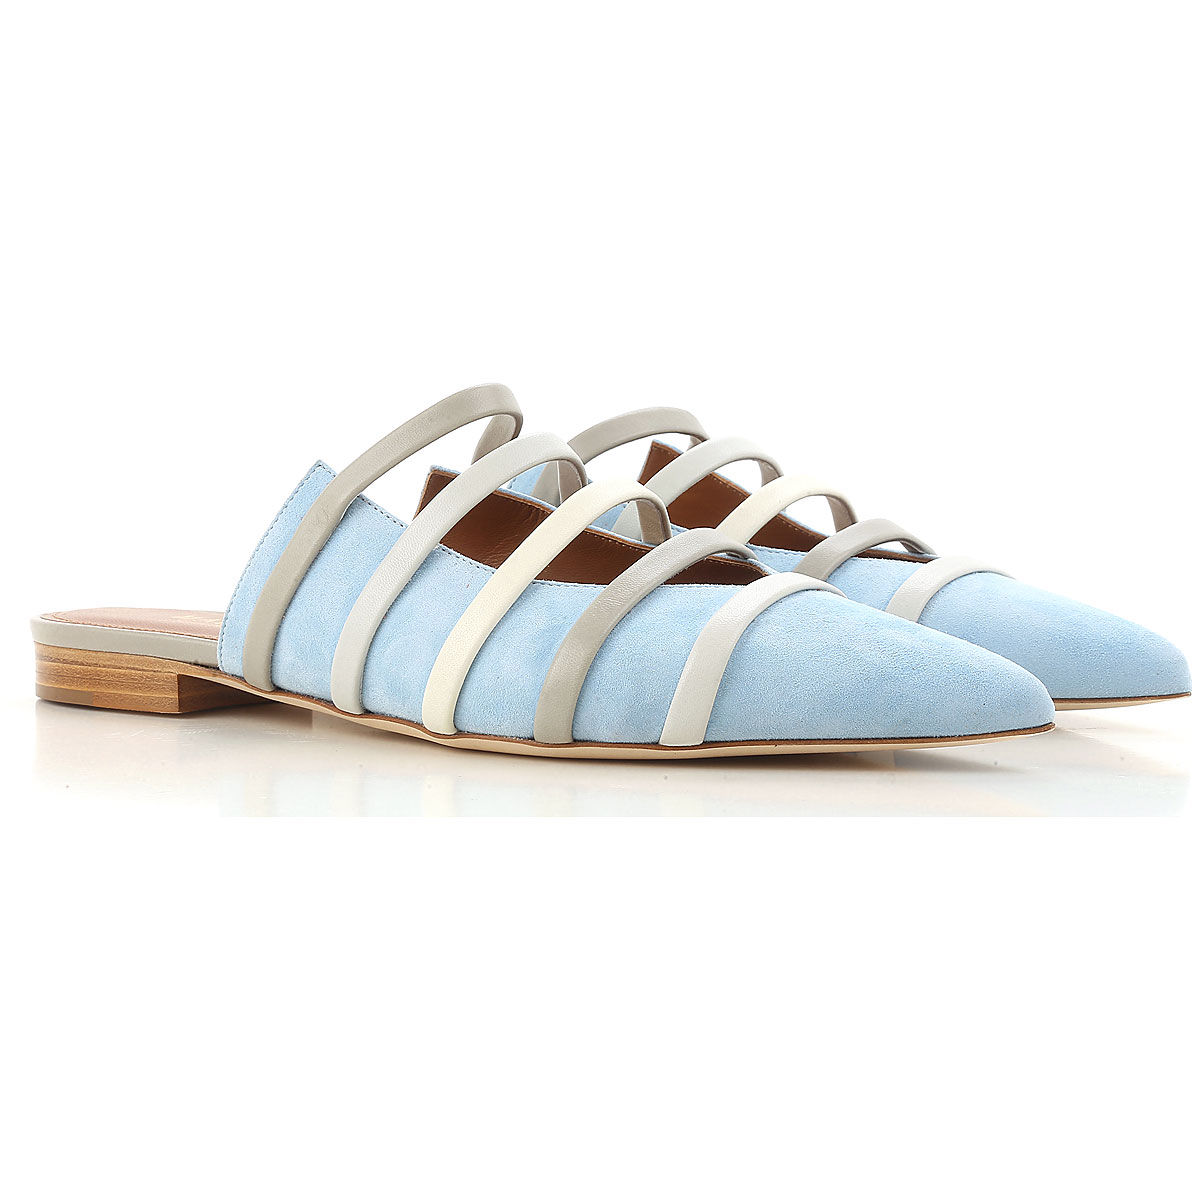 Malone Souliers Ballet Flats Ballerina Shoes for Women On Sale in Outlet, Powder Blue, Suede leather, 2019, 6 6.5 8.5